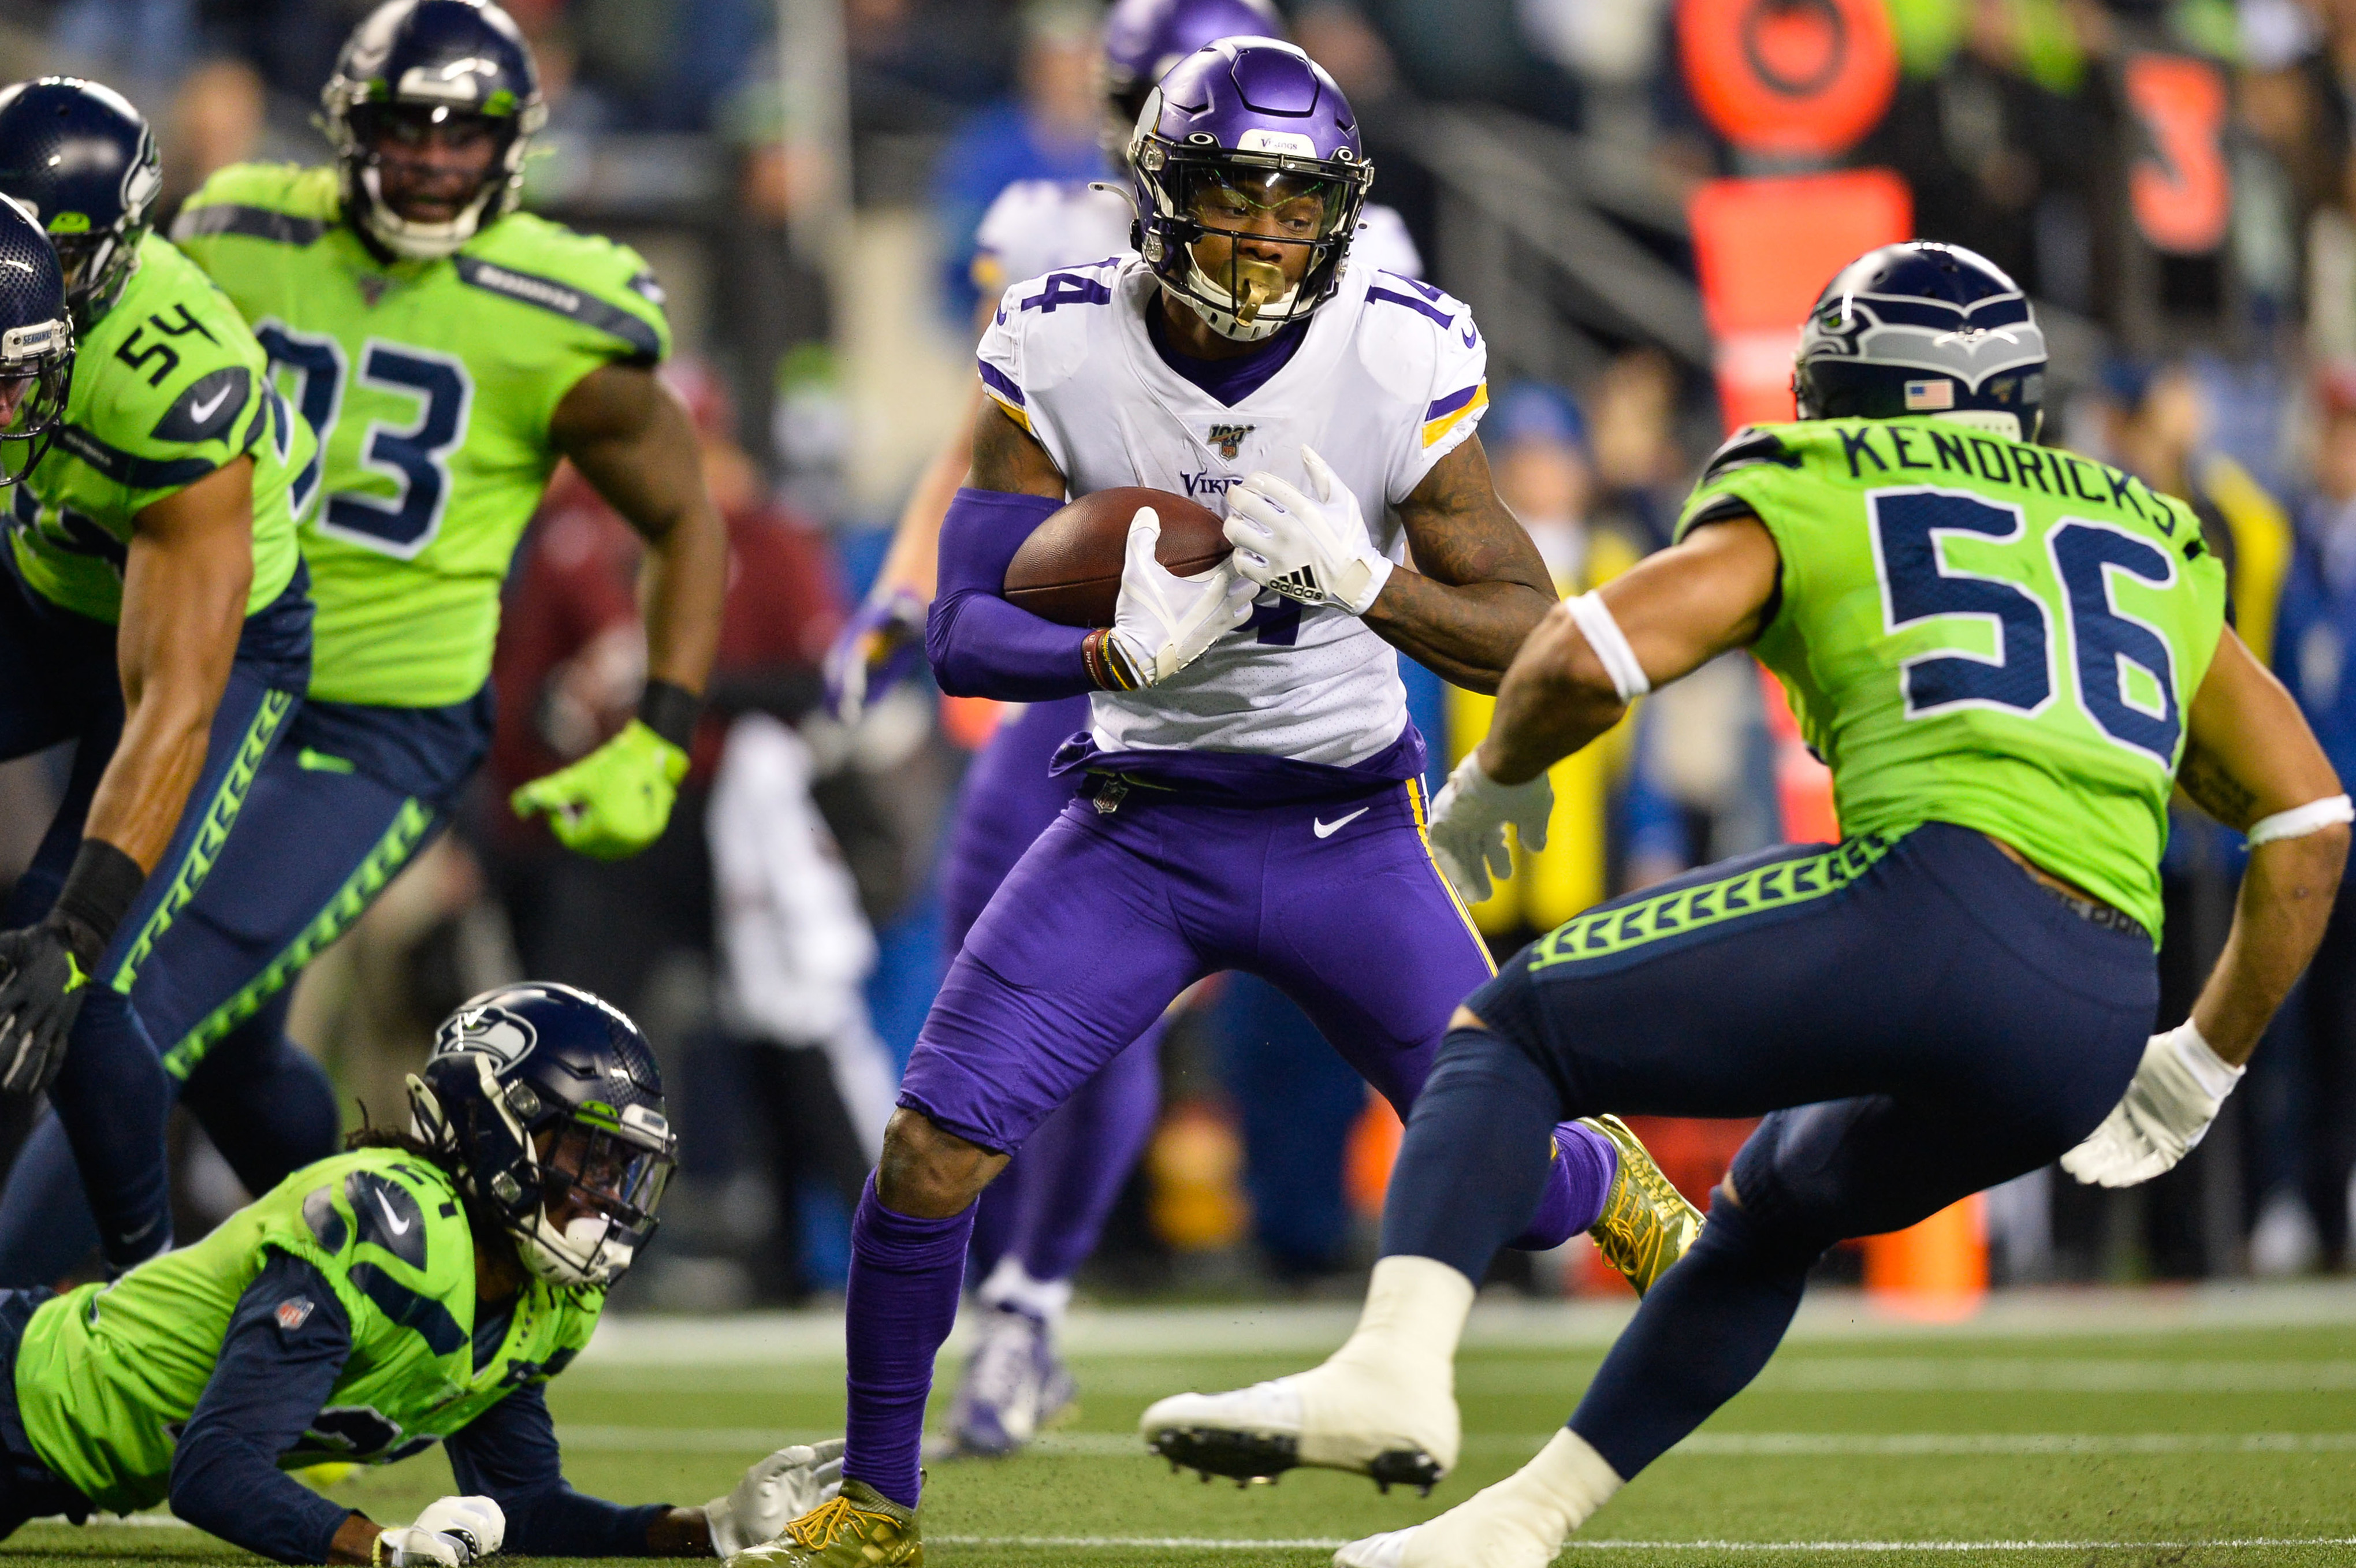 Dec 2, 2019; Seattle, WA, USA; Minnesota Vikings wide receiver Stefon Diggs (14) carries the ball after a catch against the  Seattle Seahawks during the first half at CenturyLink Field. Mandatory Credit: Steven Bisig-USA TODAY Sports